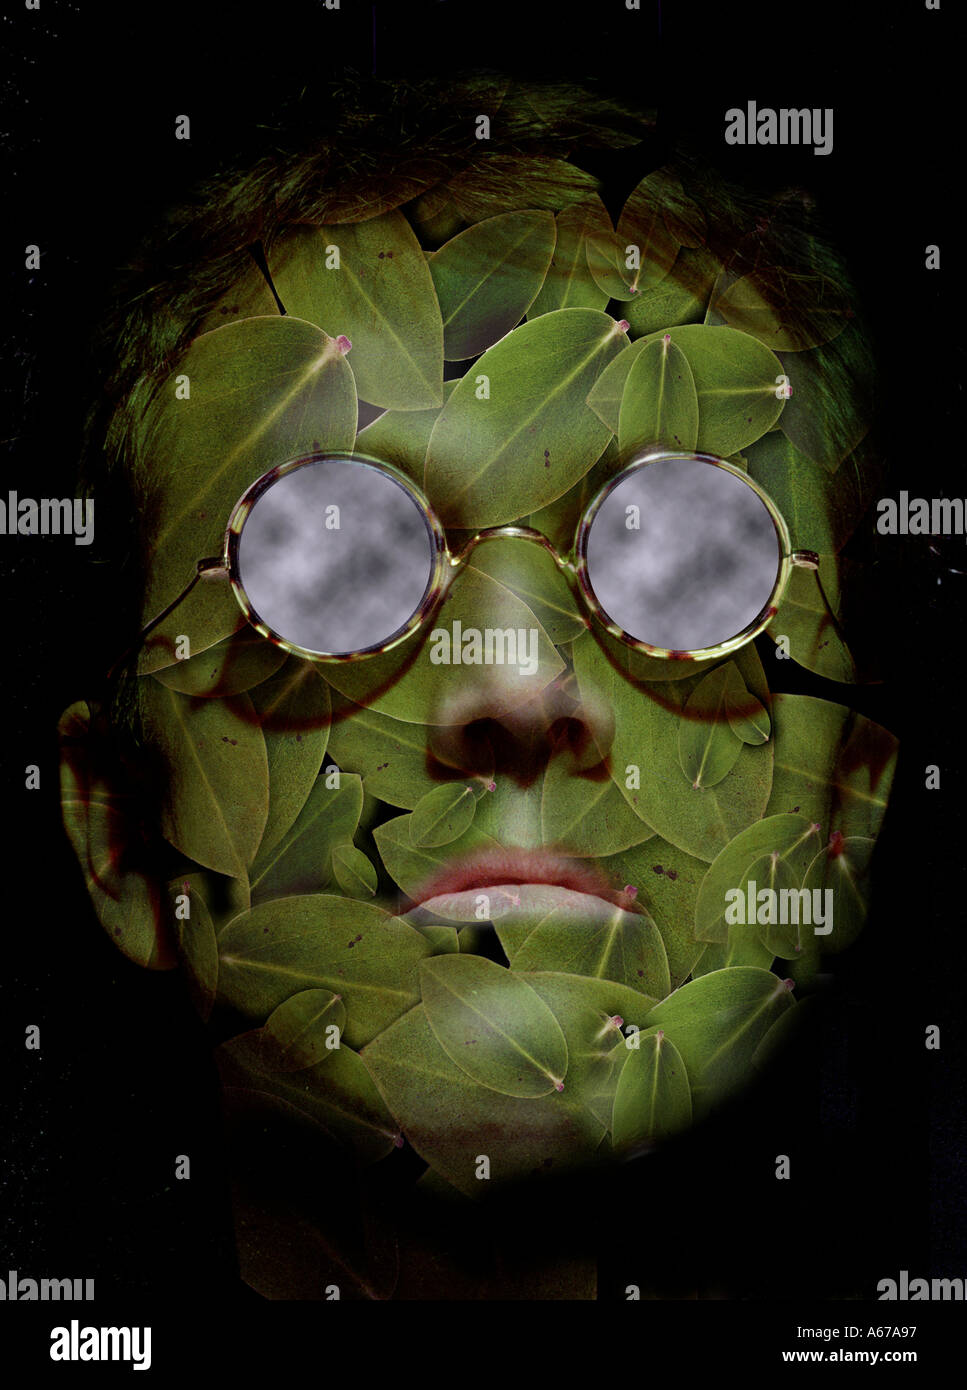 idea nature concept man s face made of leaves wearing sunglasses